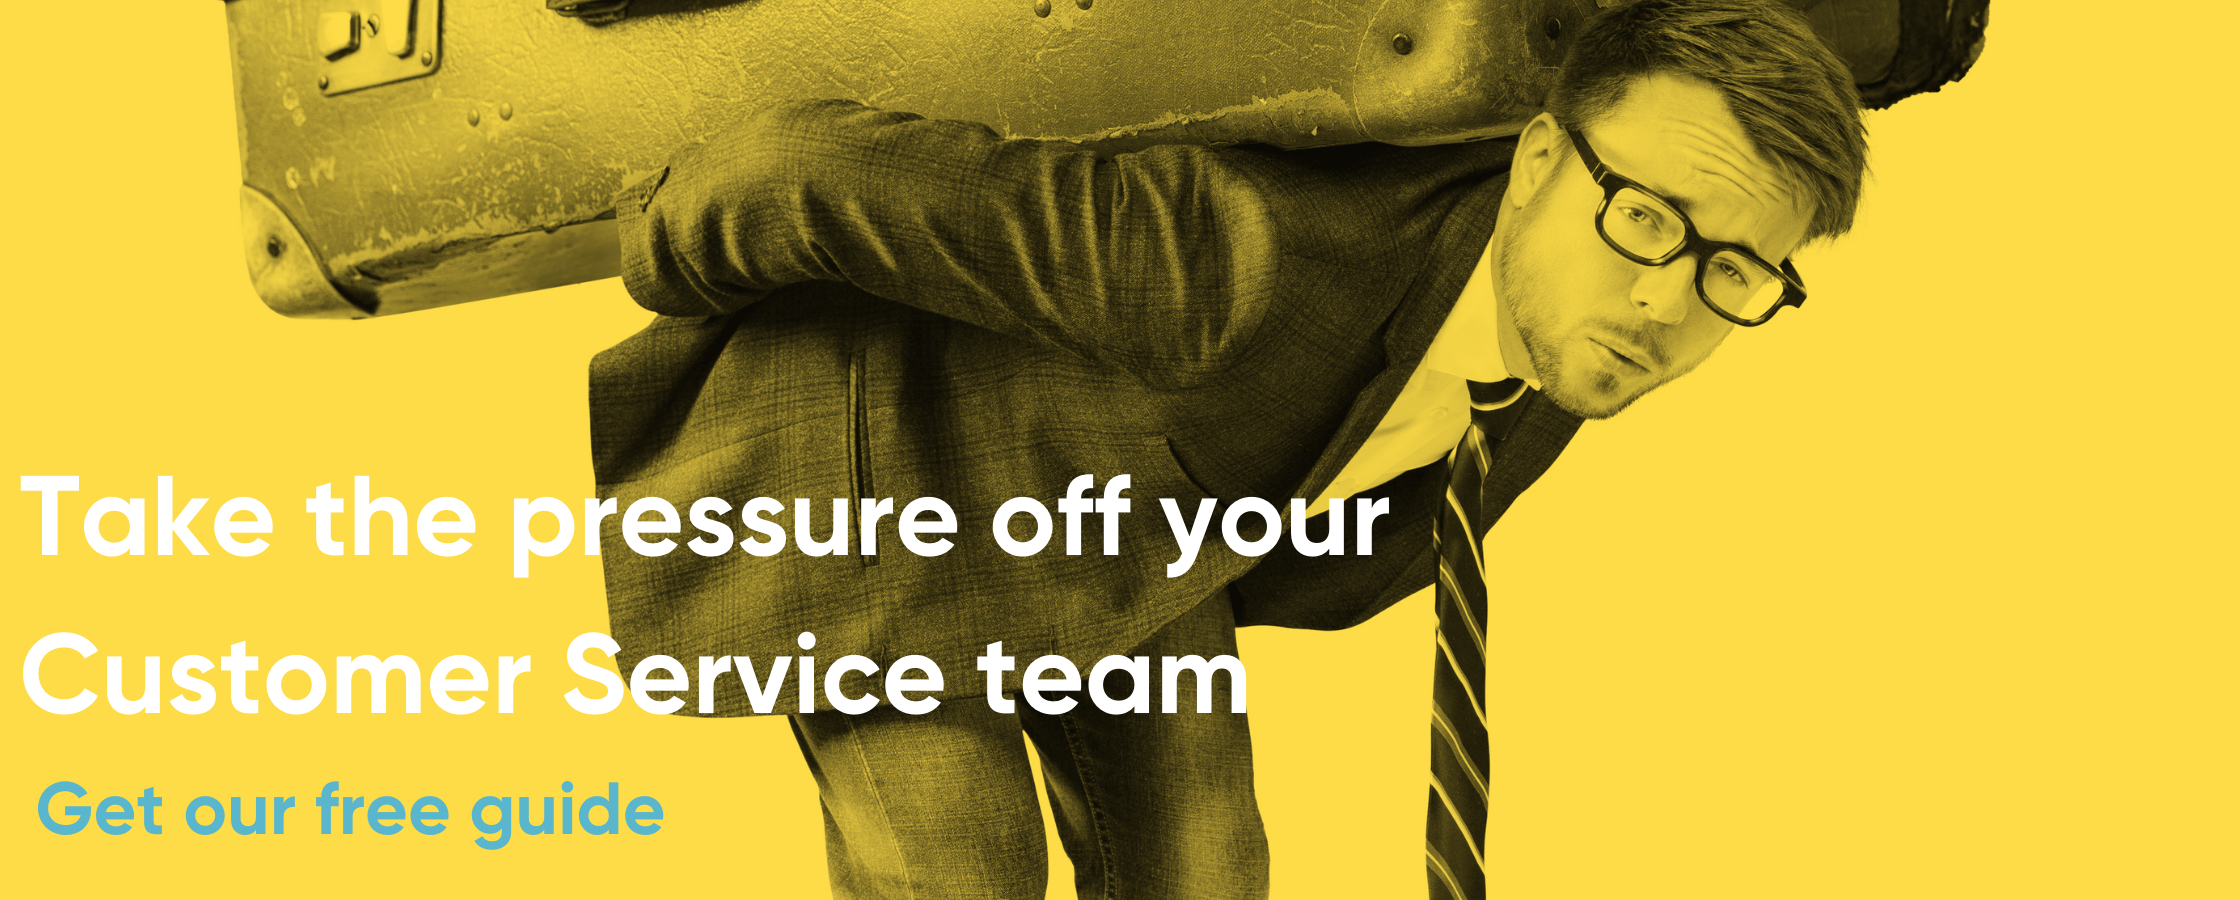 Help lighten the load from your Customer Service team